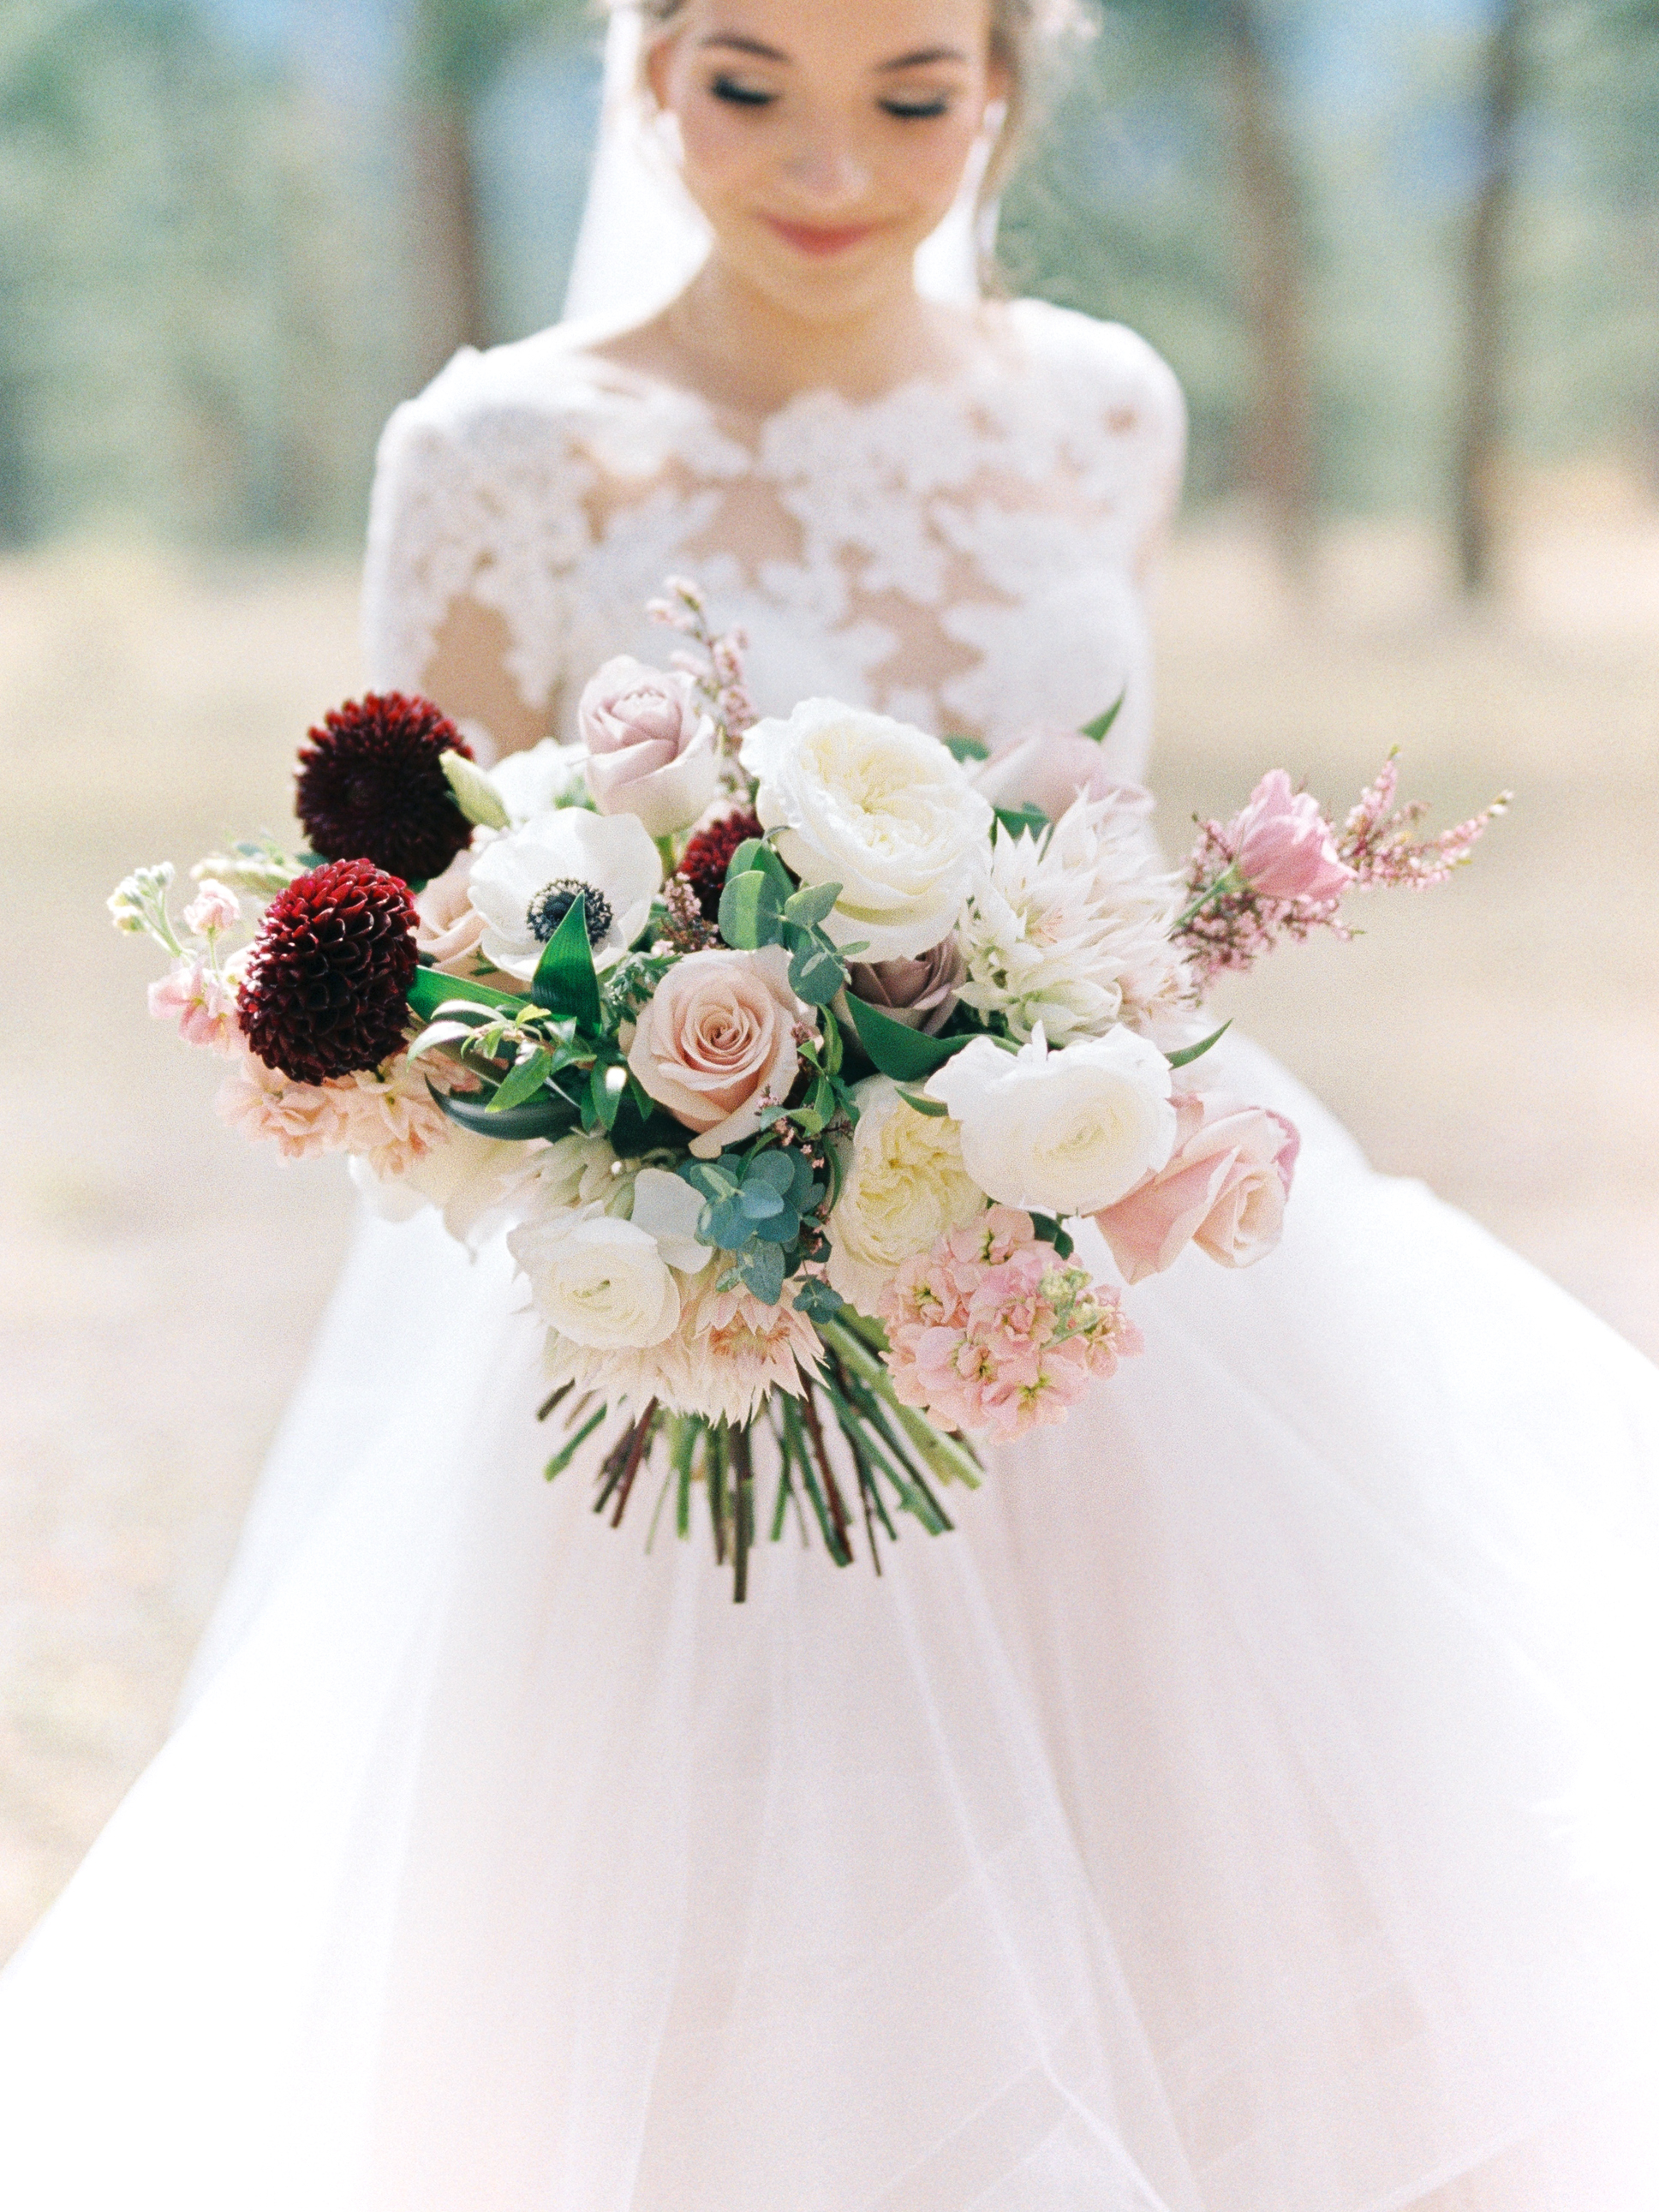 Flowers by Lace and Lilies, bridal bouquet, blush bridesmaid dresses, military wedding, blush flowers, burgundy flowers, mountain wedding, wedding photography, wedding flowers, bridal party